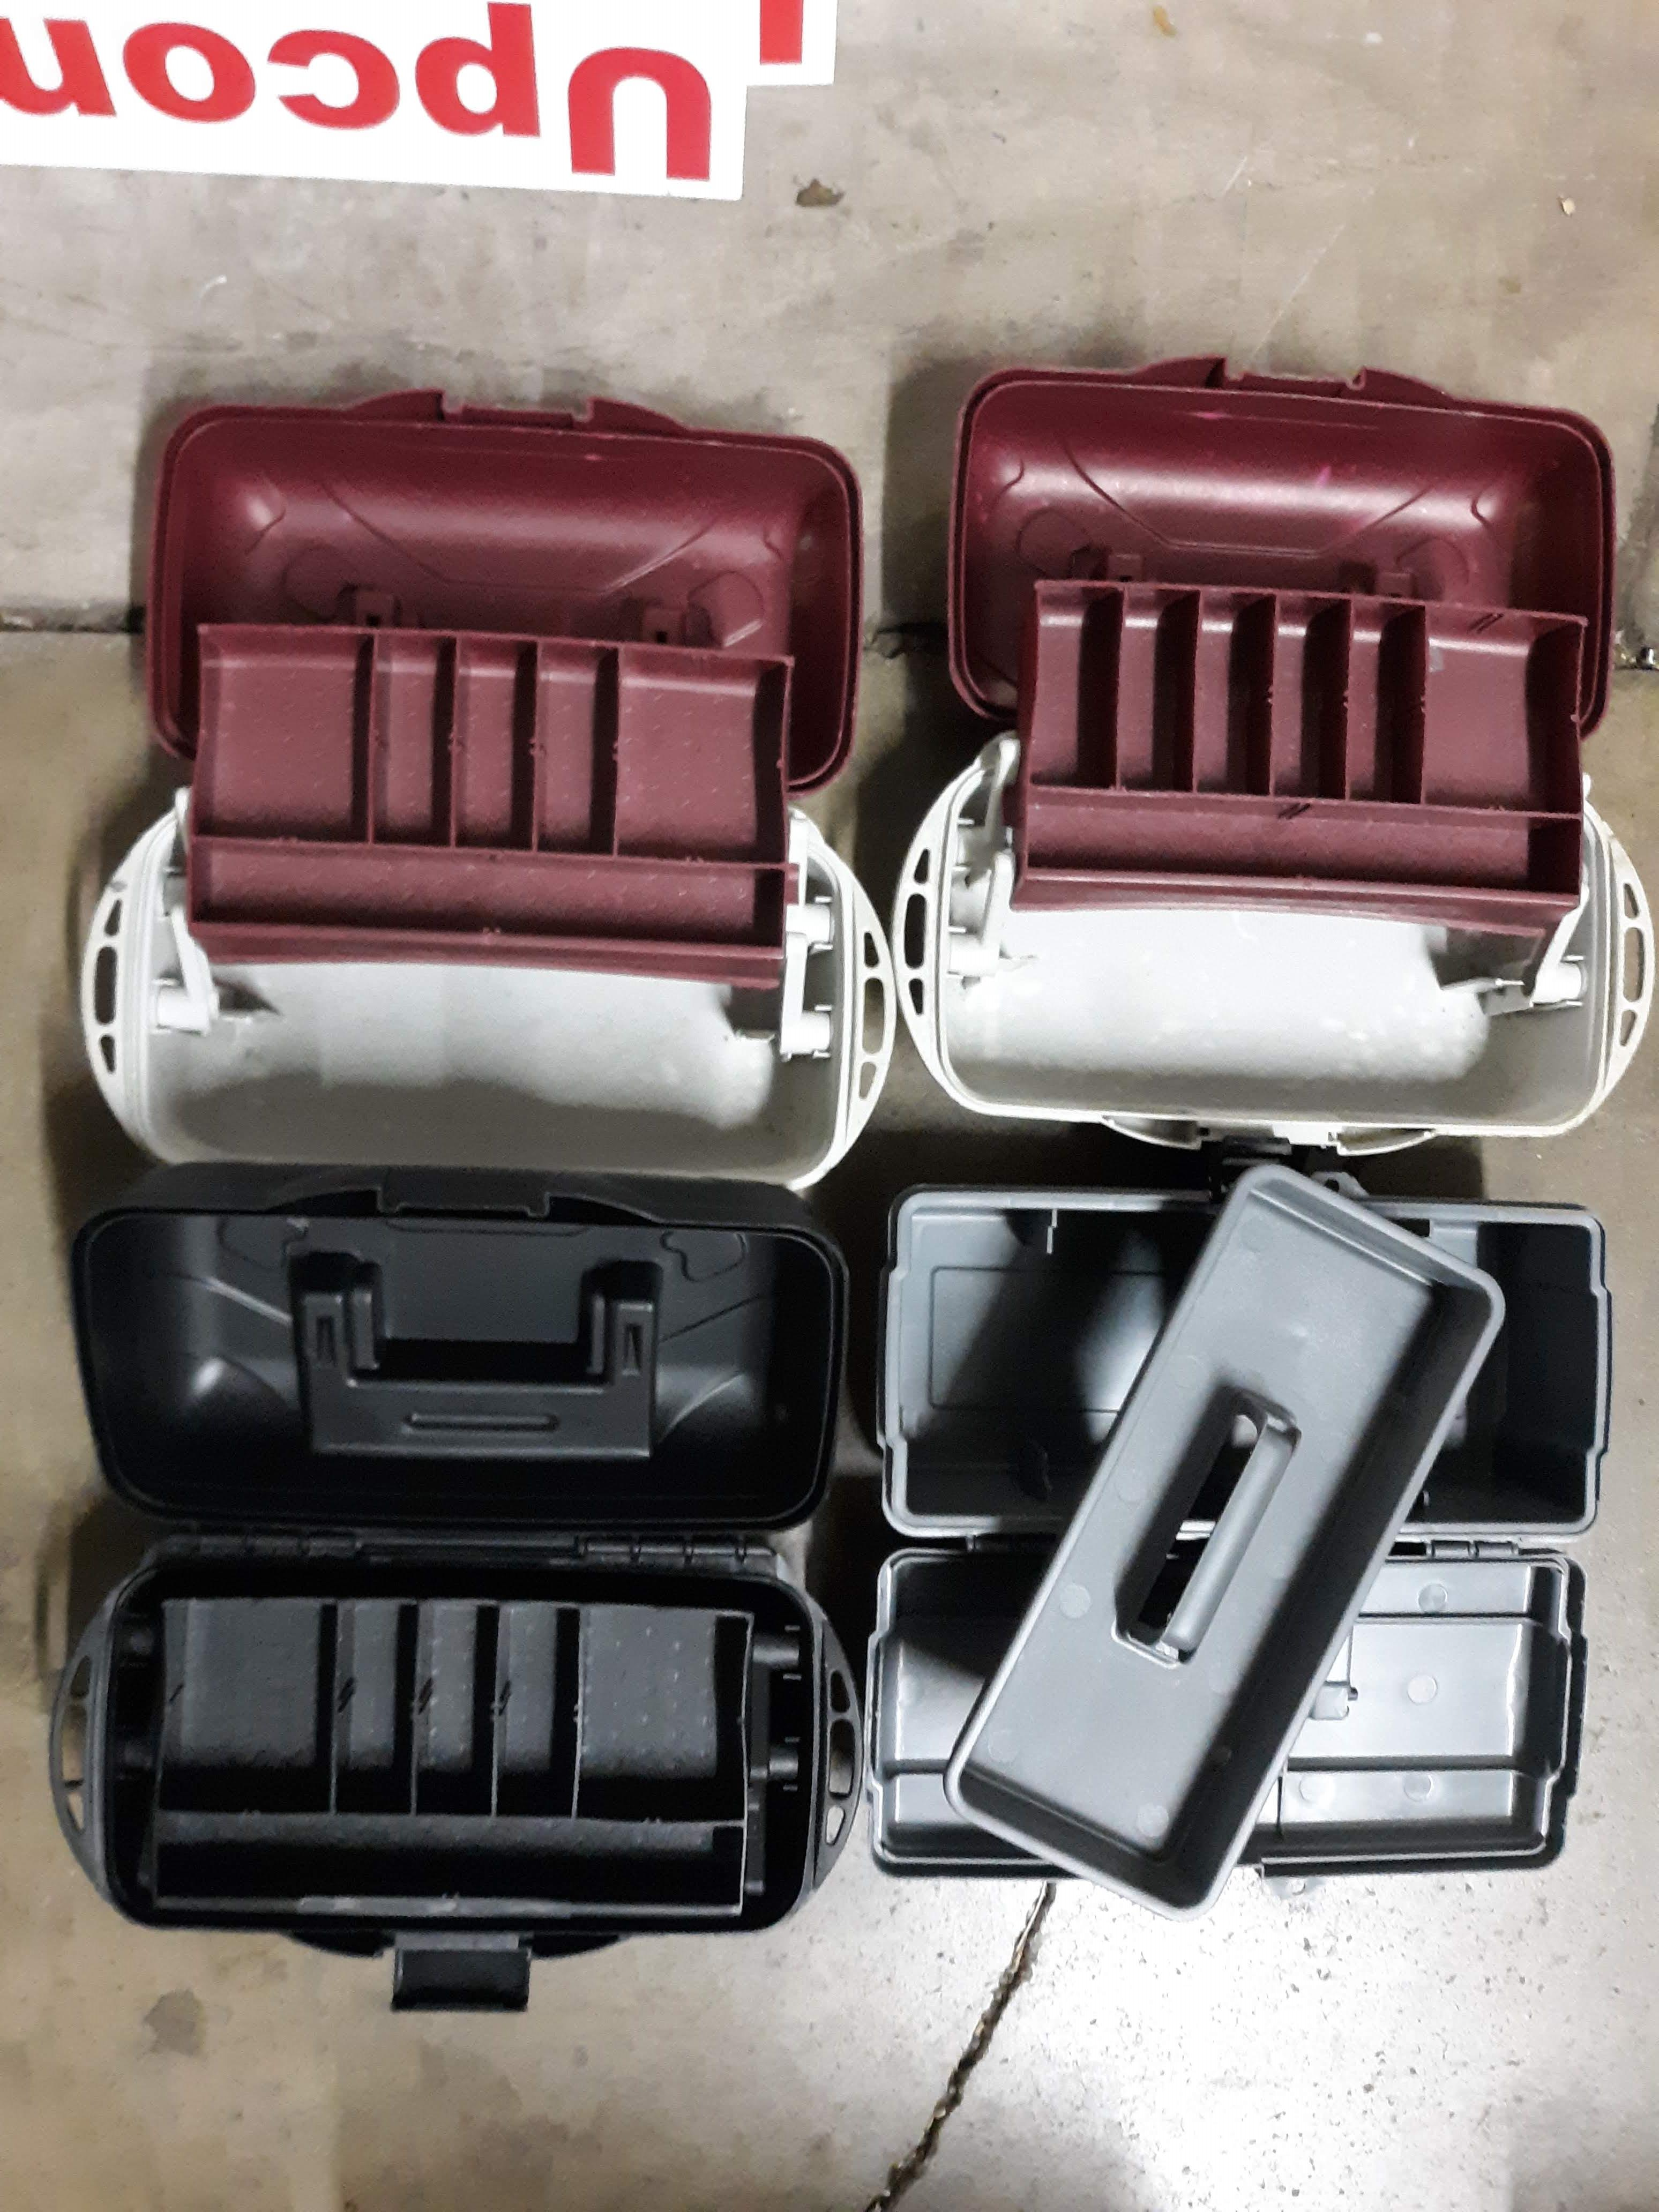 (4) PLASTIC TOOL BOX/ TACKLE BOXES (LOCATED AT: 432 COUNCIL DRIVE, FORT WAYNE, IN 46825) - Image 3 of 3